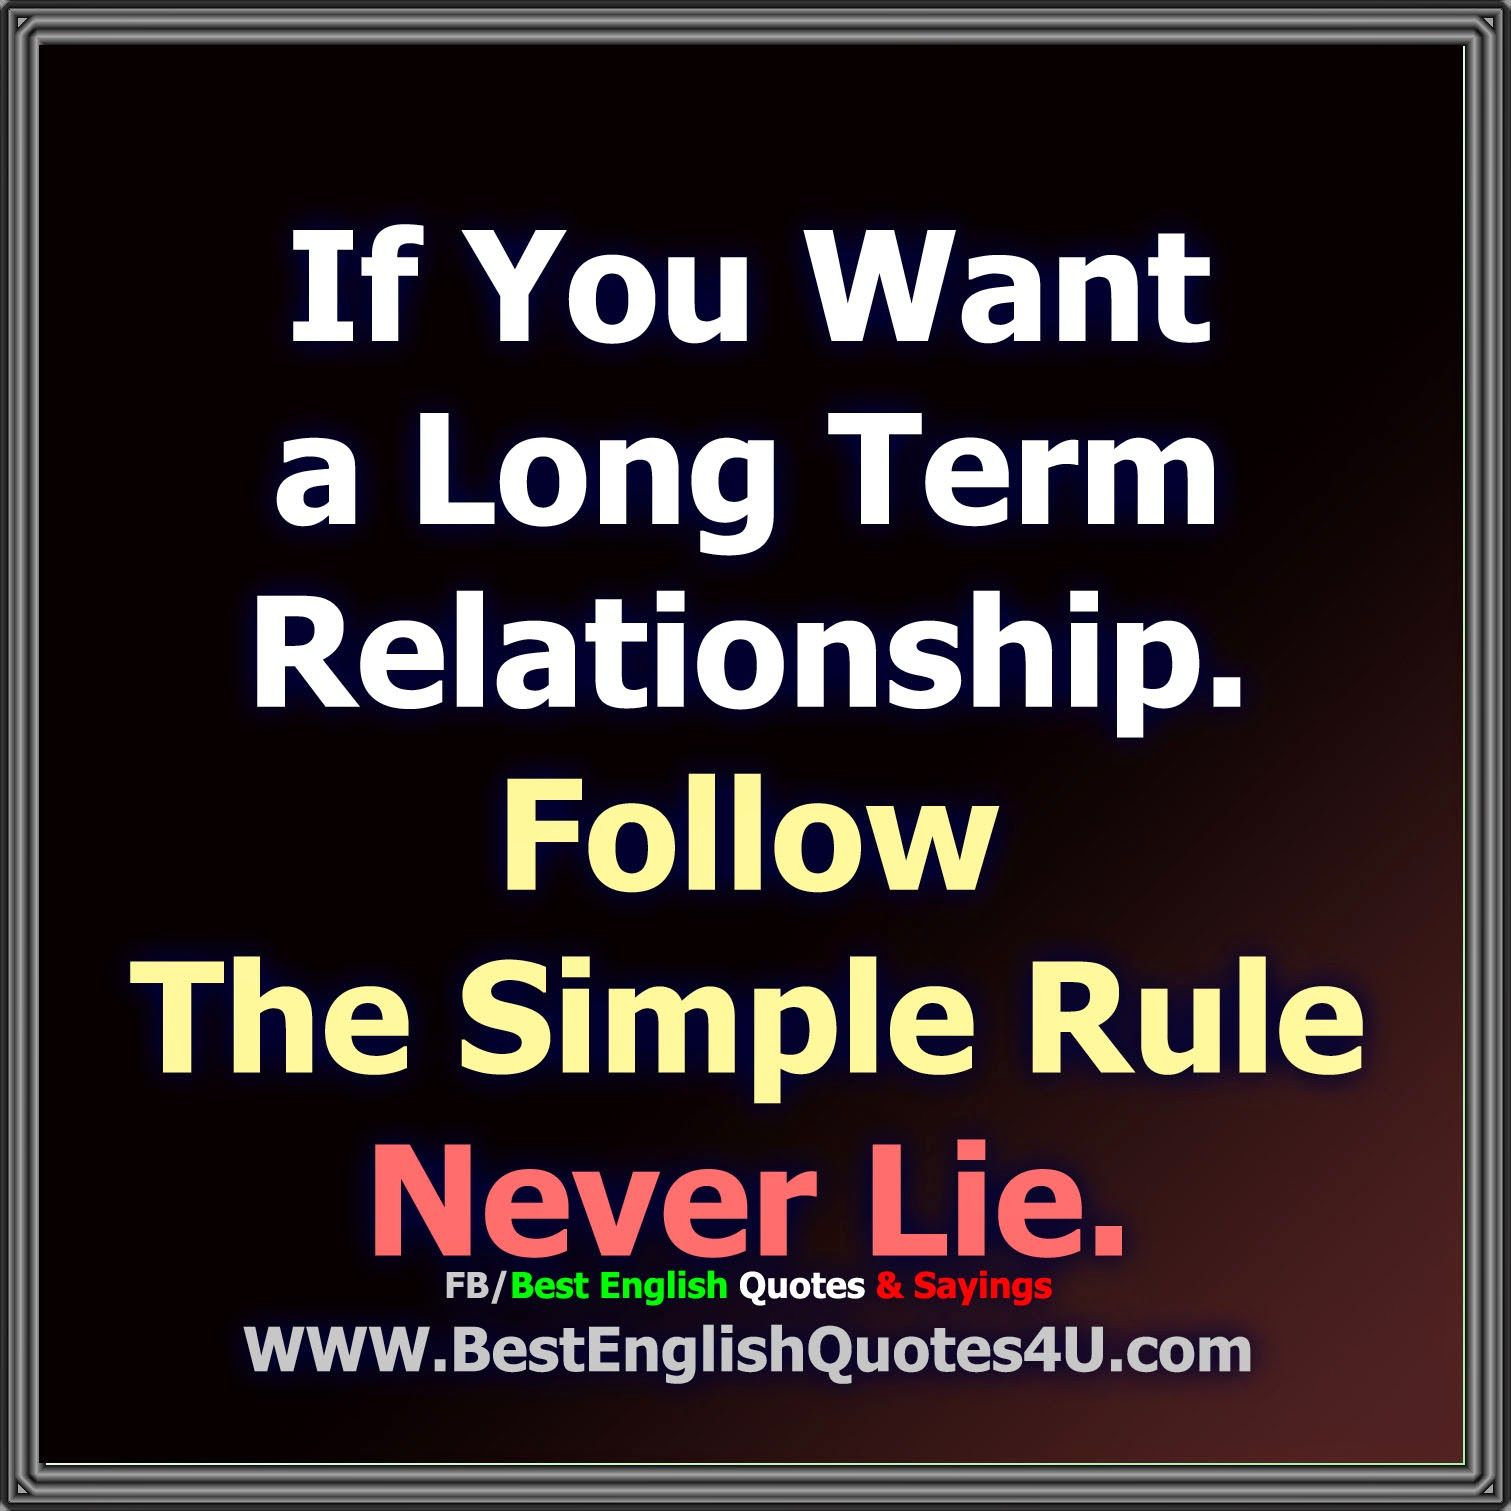 Best English Quotes Sayings Words To Live By Quotes English